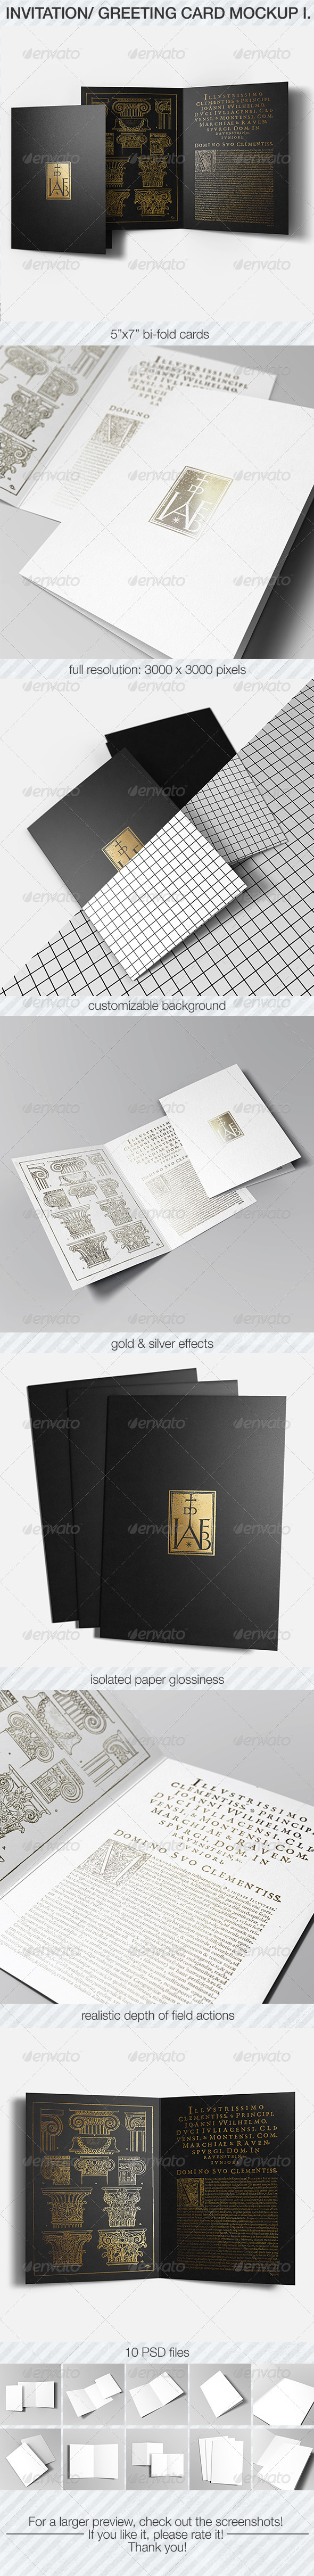 GraphicRiver Invitation & Greeting Card Mockup Pack I 6925817